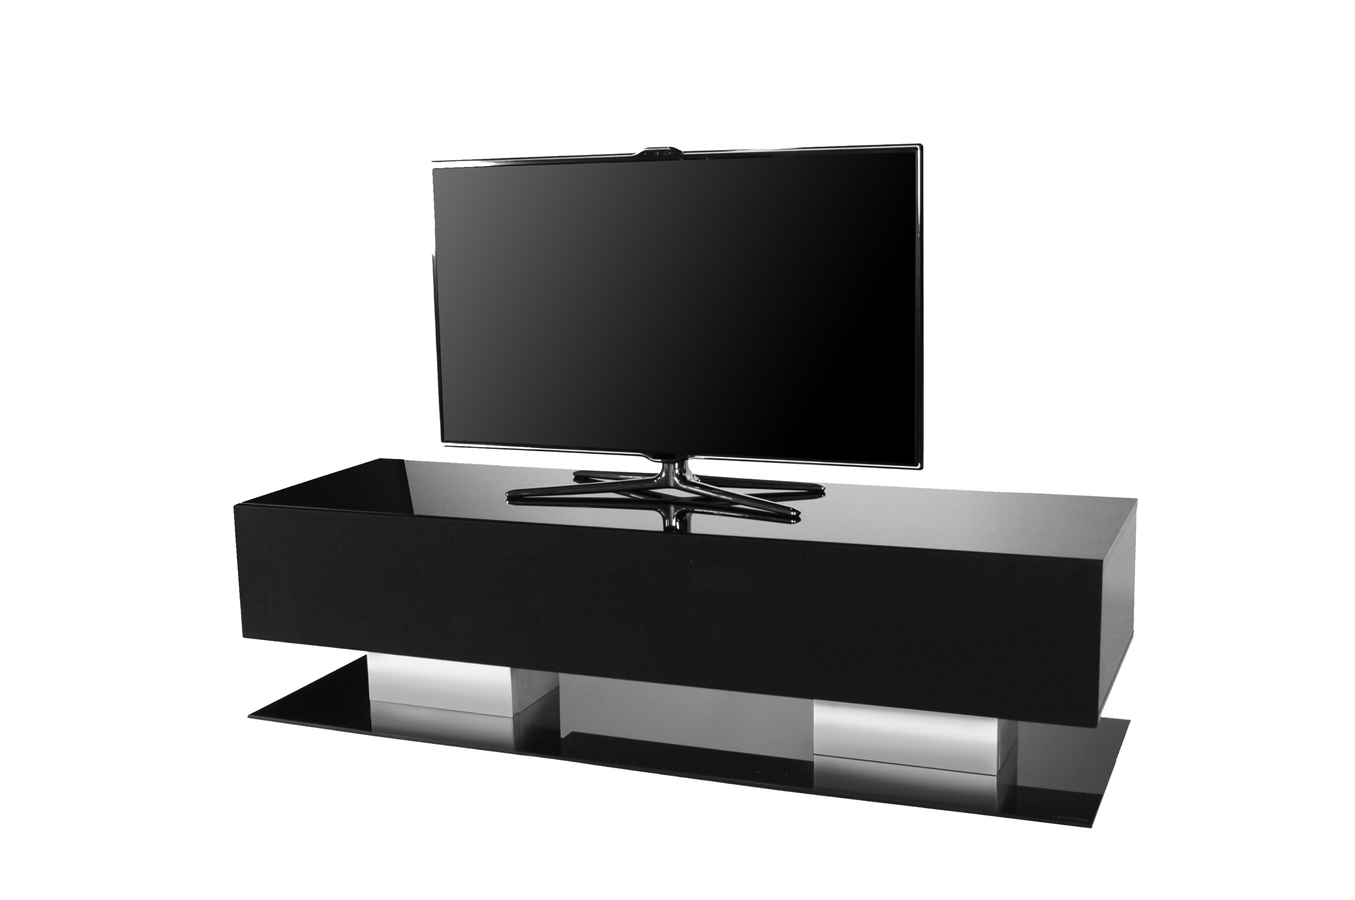 meuble tv norstone tably 3723461 darty. Black Bedroom Furniture Sets. Home Design Ideas